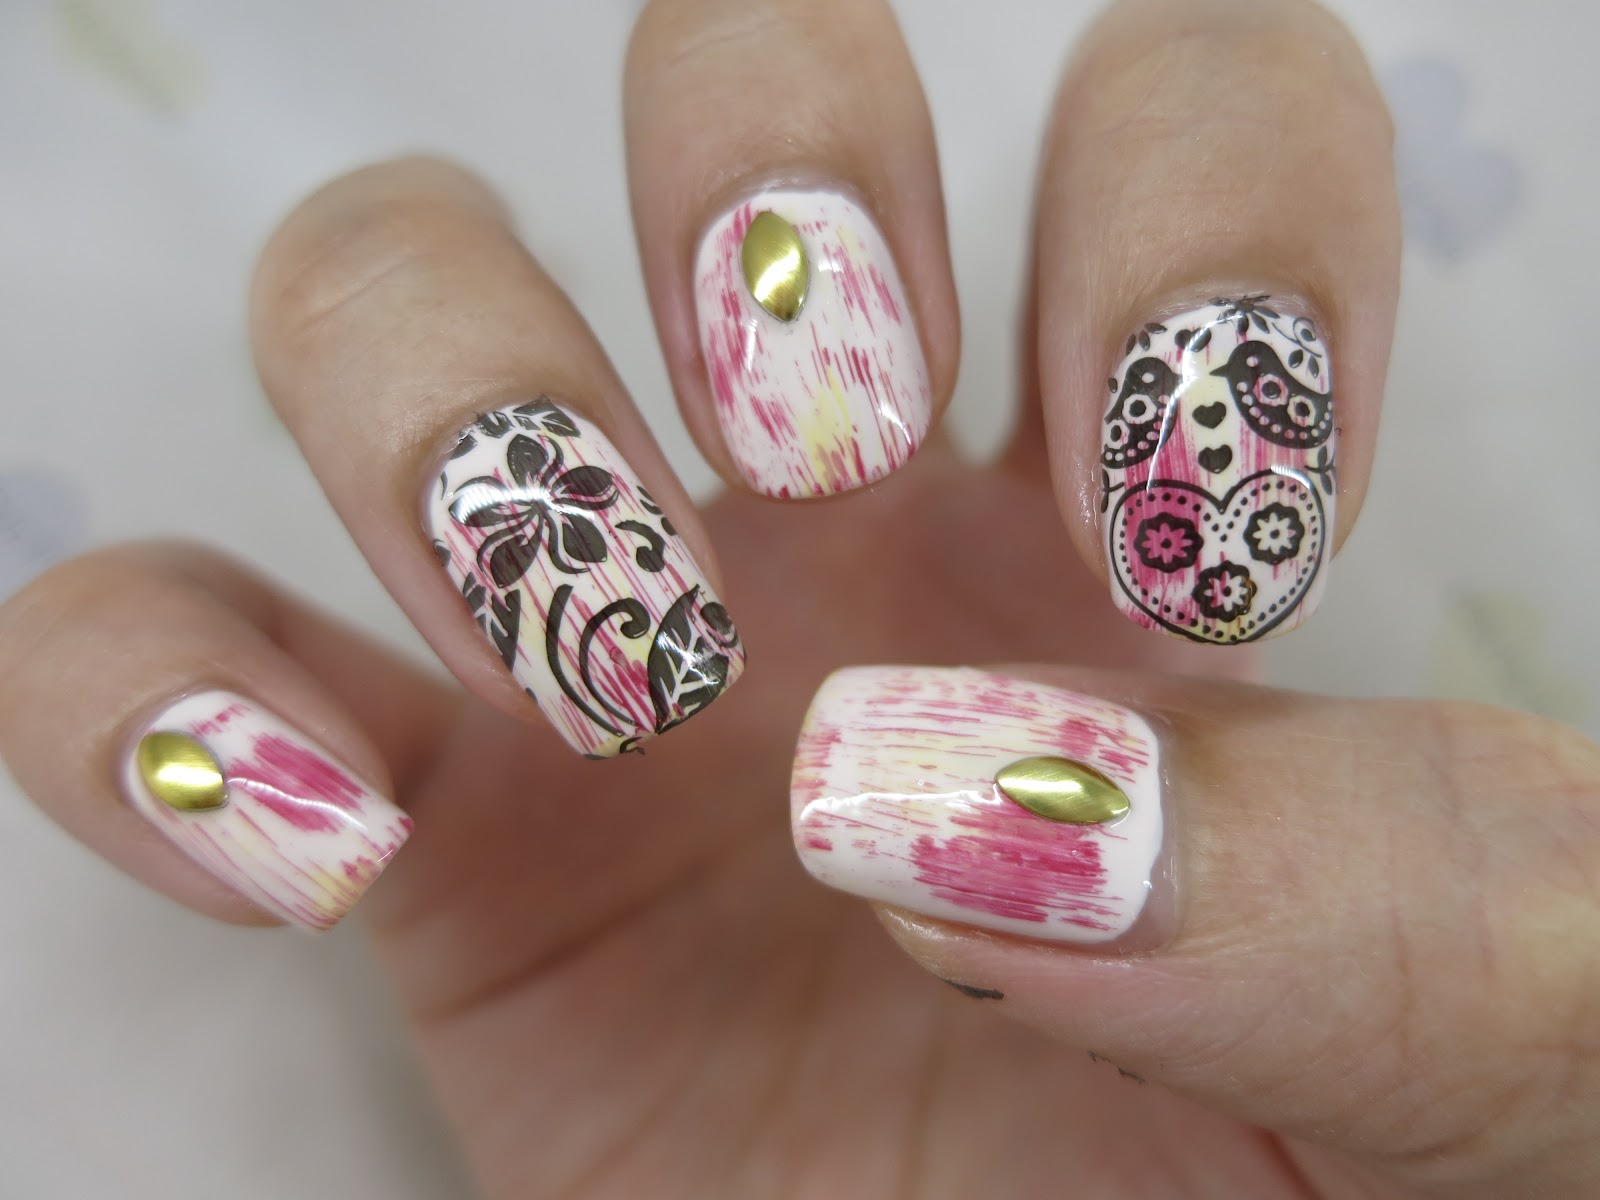 Floral And Birds Nail Art Image Plate Bpl 66 Born Pretty Review